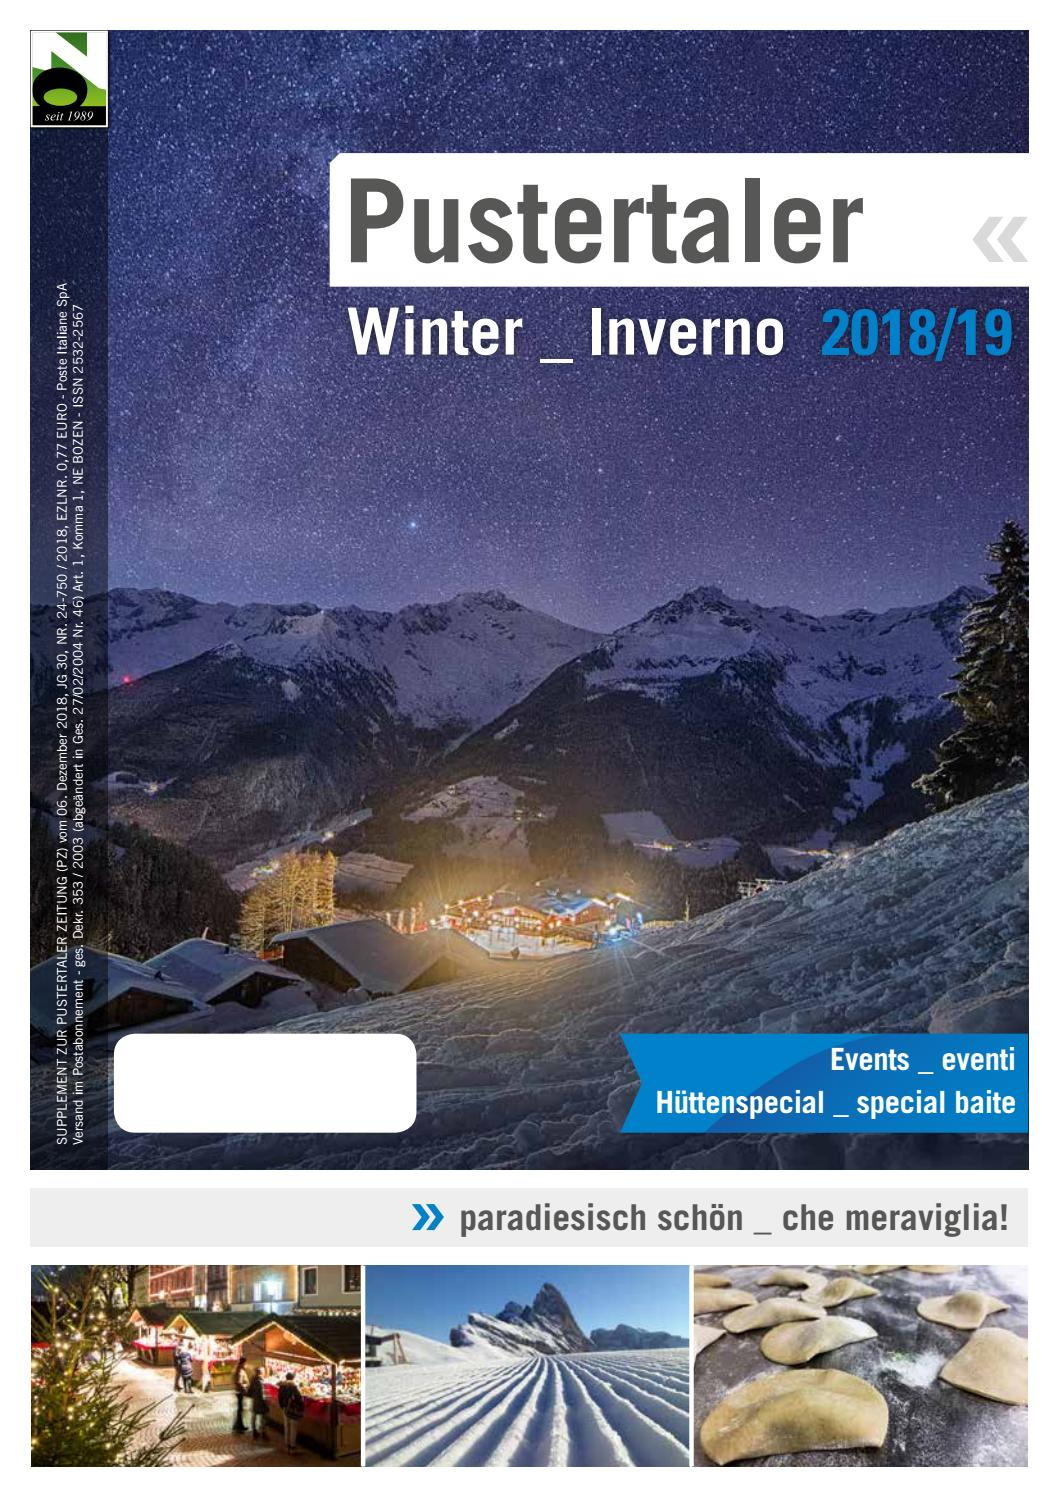 Pusteria inverno 2018 19 by Pustertaler Medien GmbH issuu